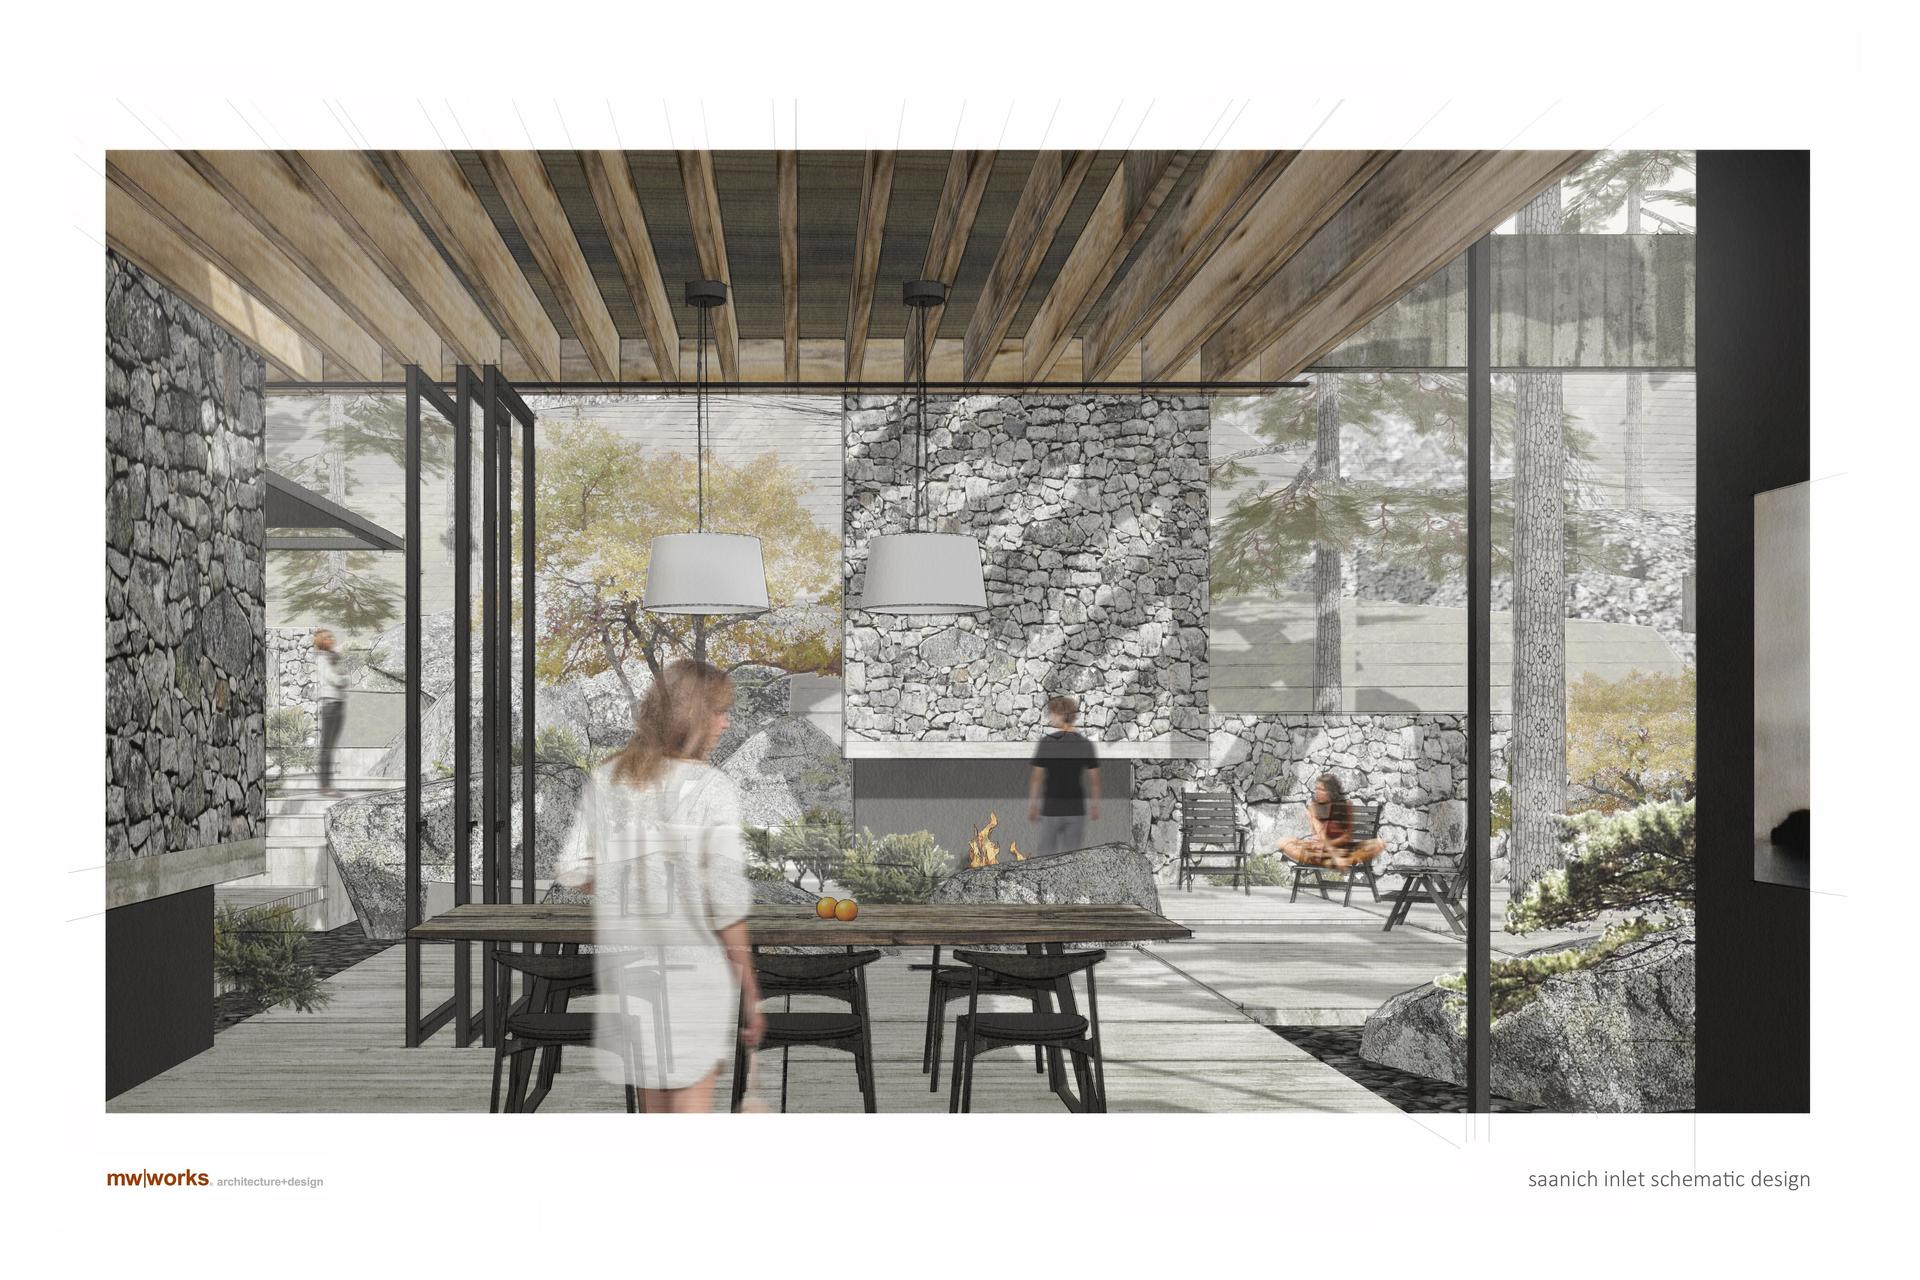 Full Architectural Plans Included In Sale at 8100 Mcphail Road, Central Saanich, Bc,